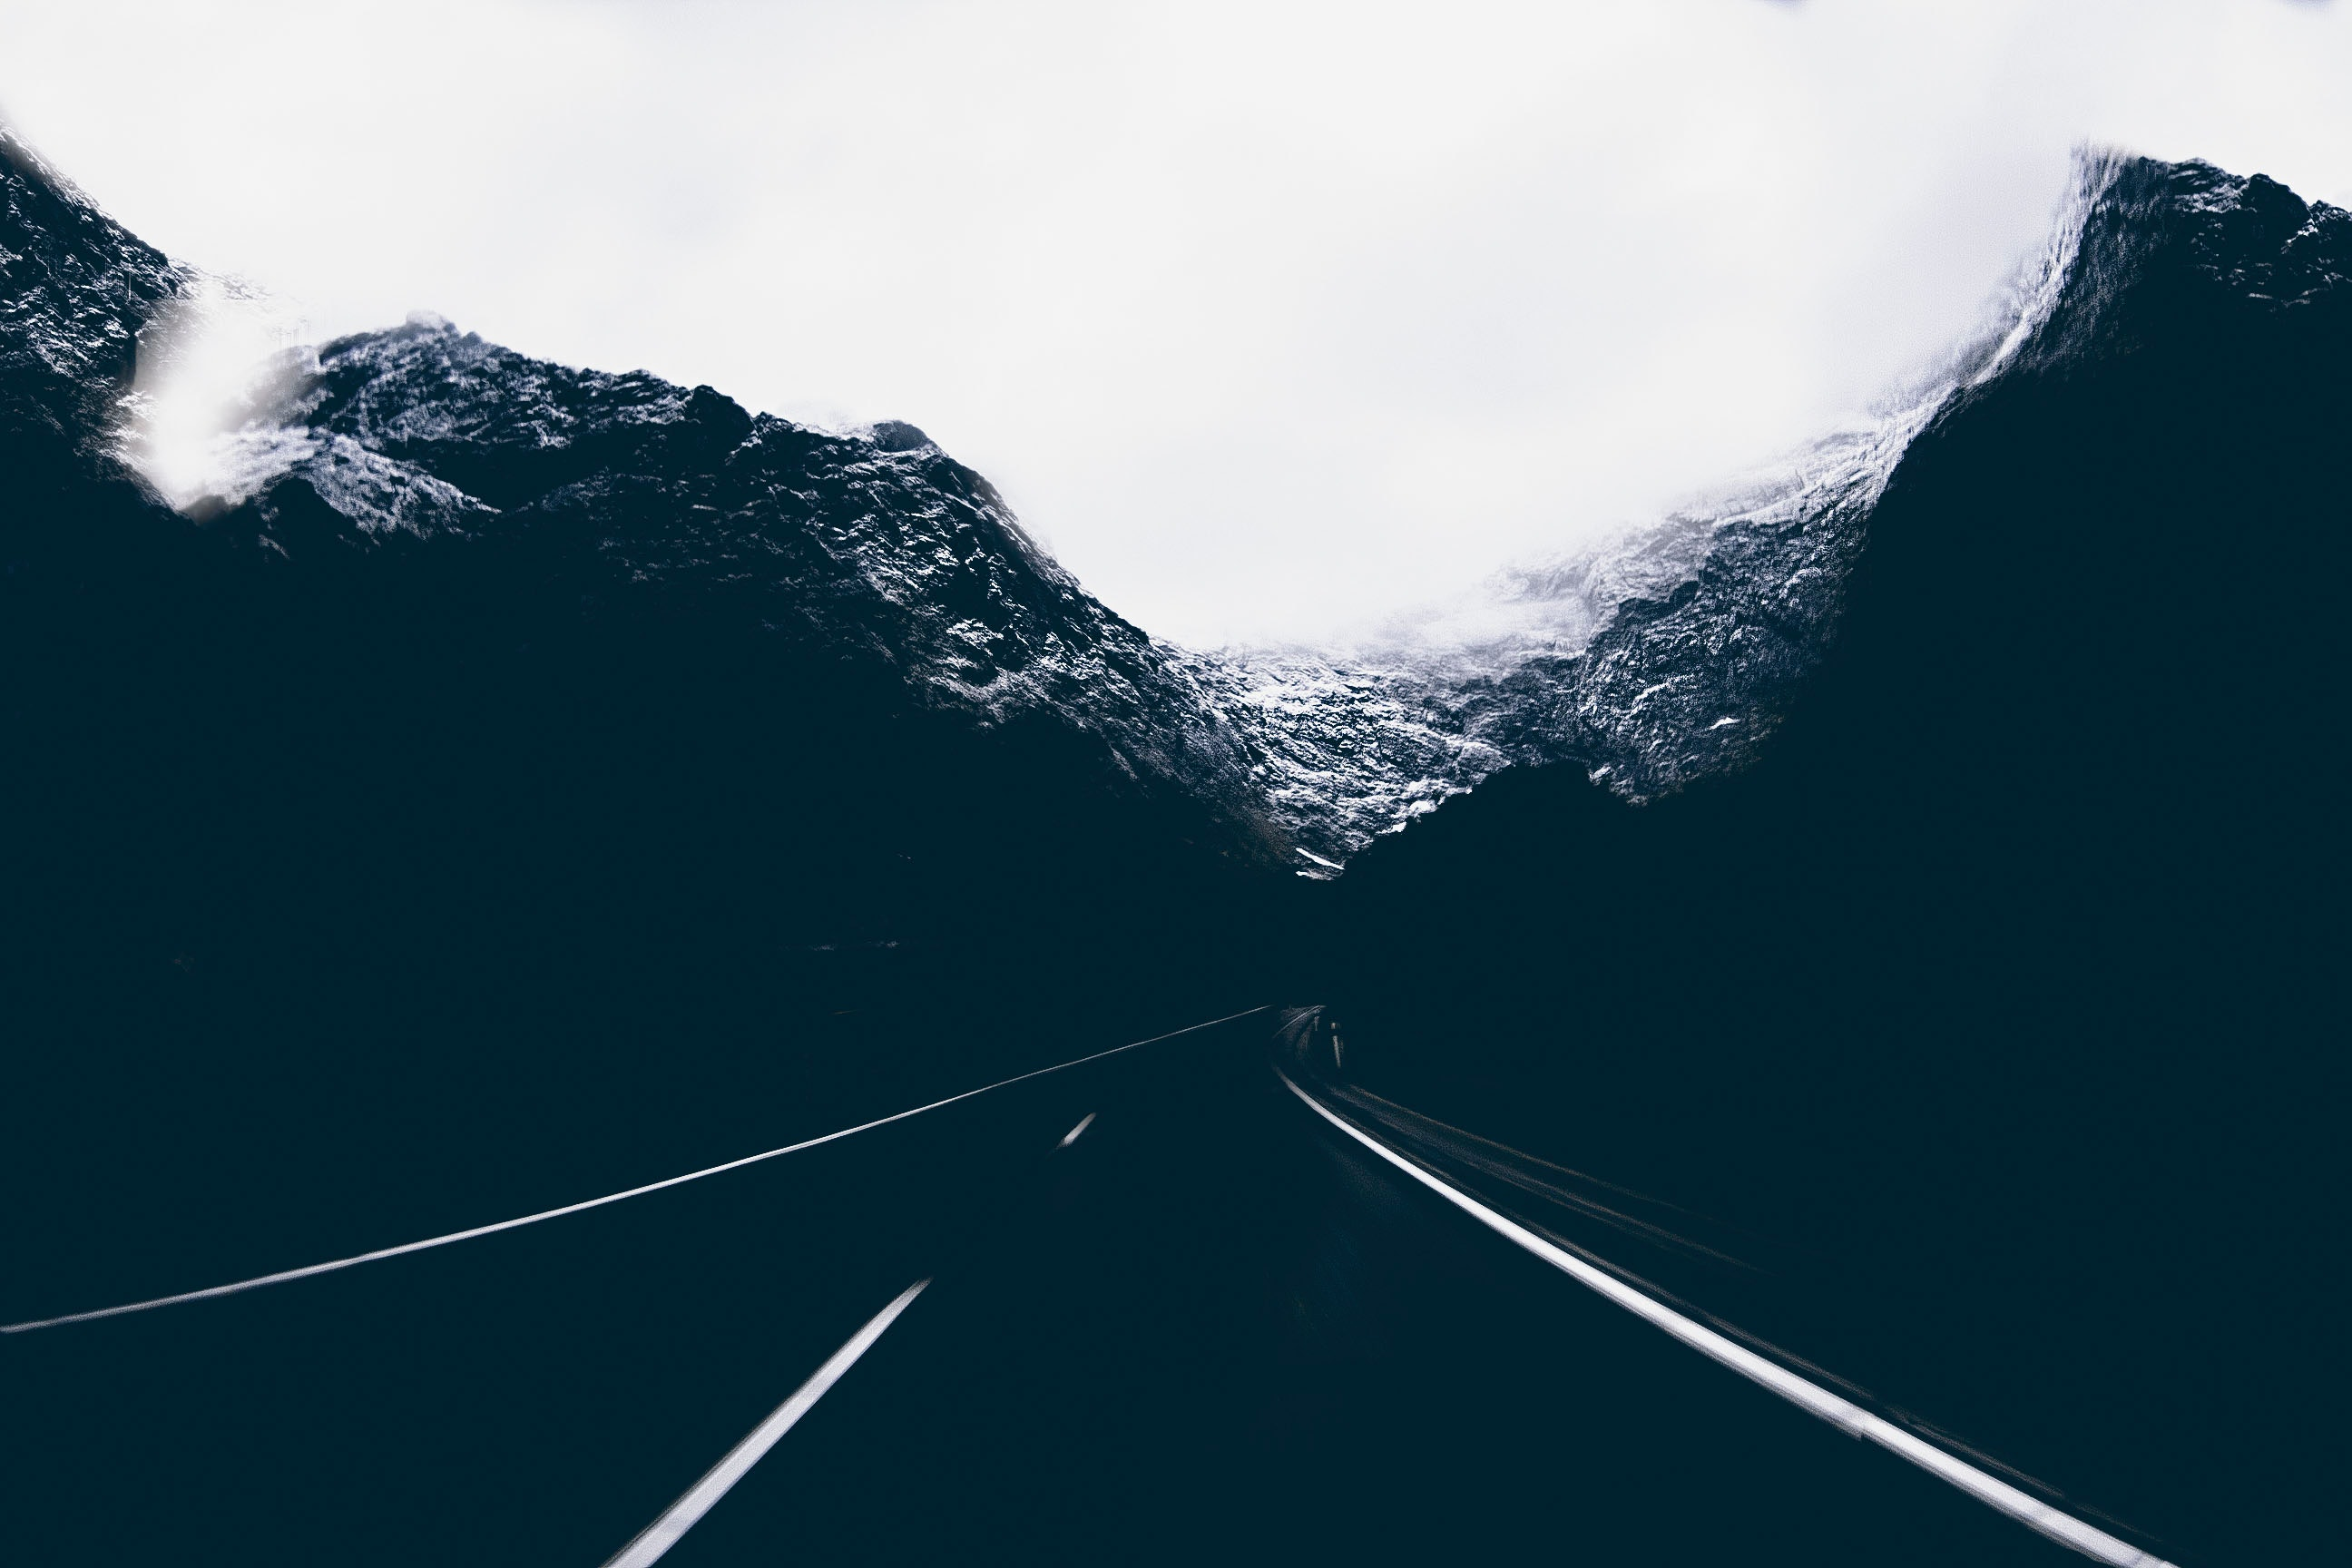 Landscape photo of road in the middle of mountains